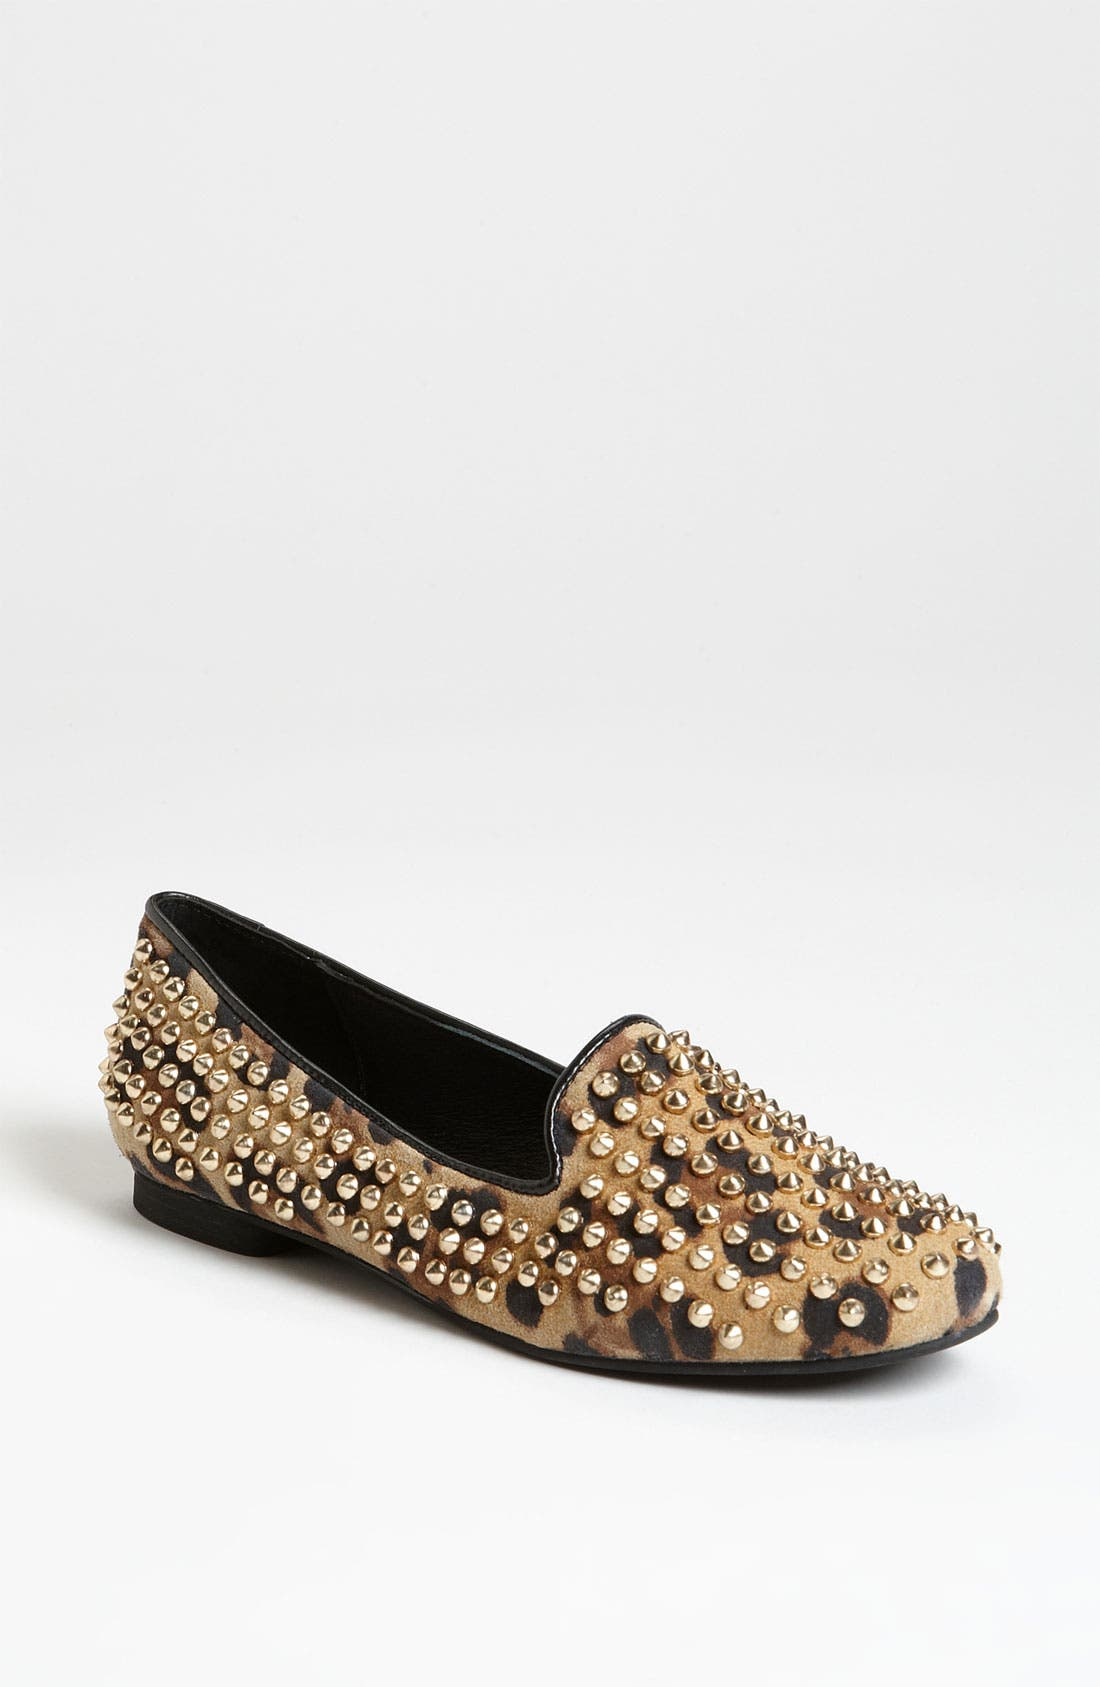 Alternate Image 1 Selected - Steve Madden 'Studly-L' Flat